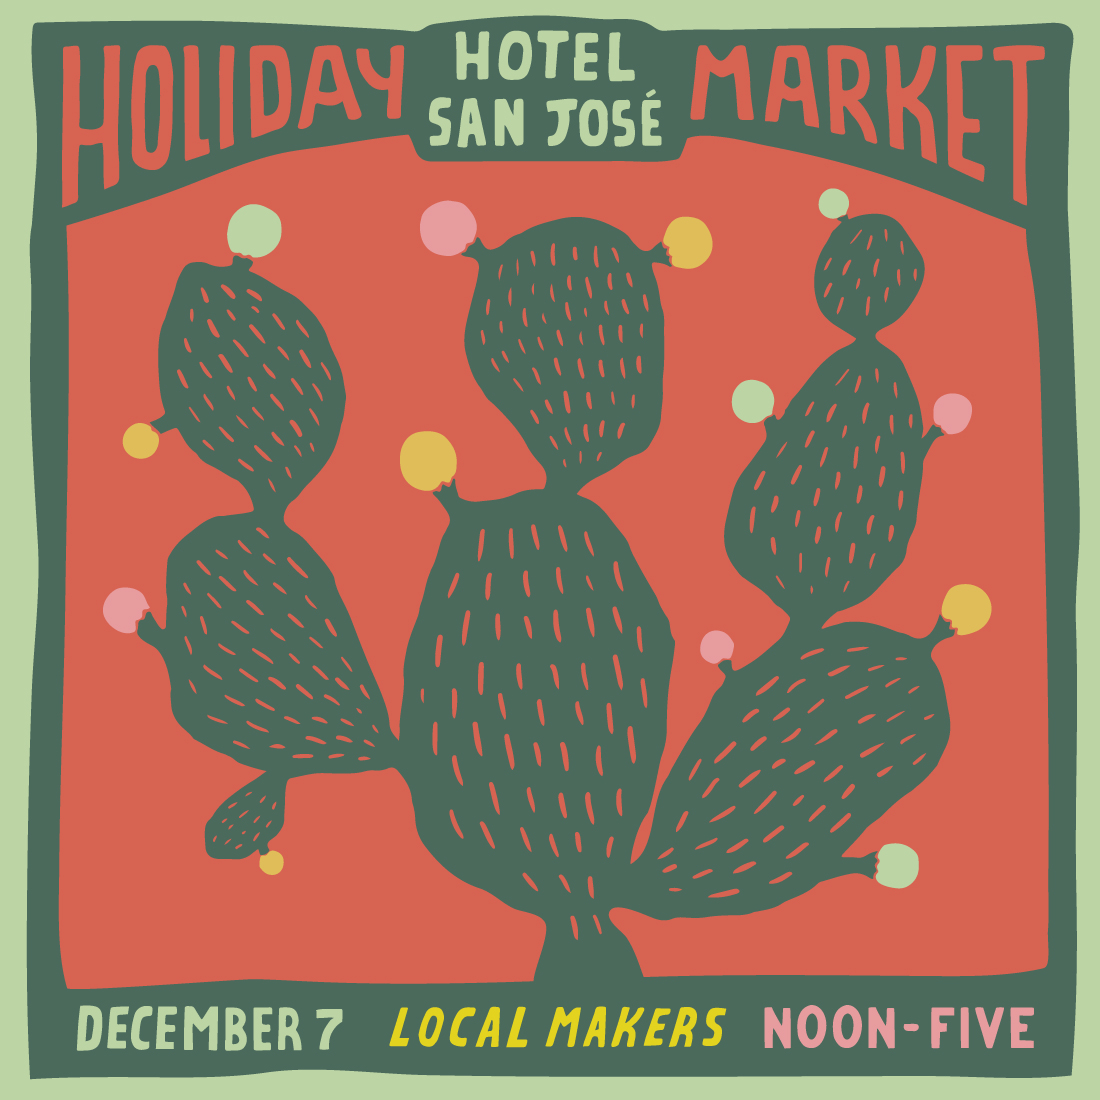 Art for the Hotel San José Holiday Market